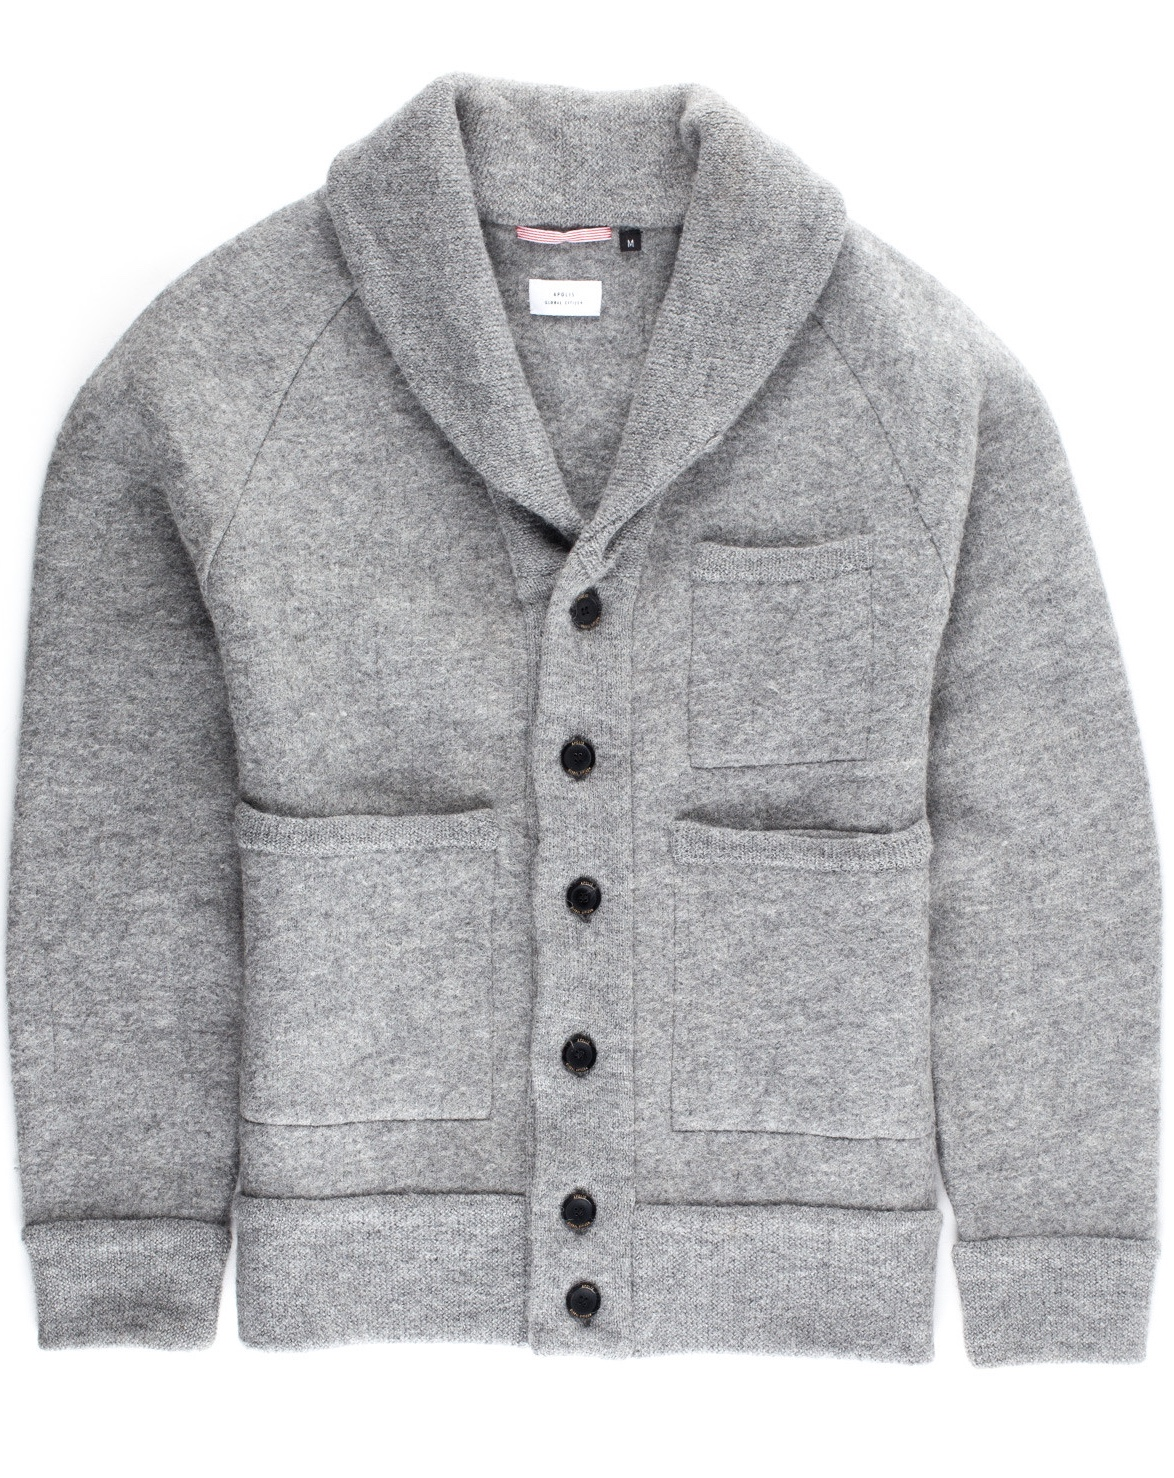 Apolis Alpaca Shawl Collar Cardigan